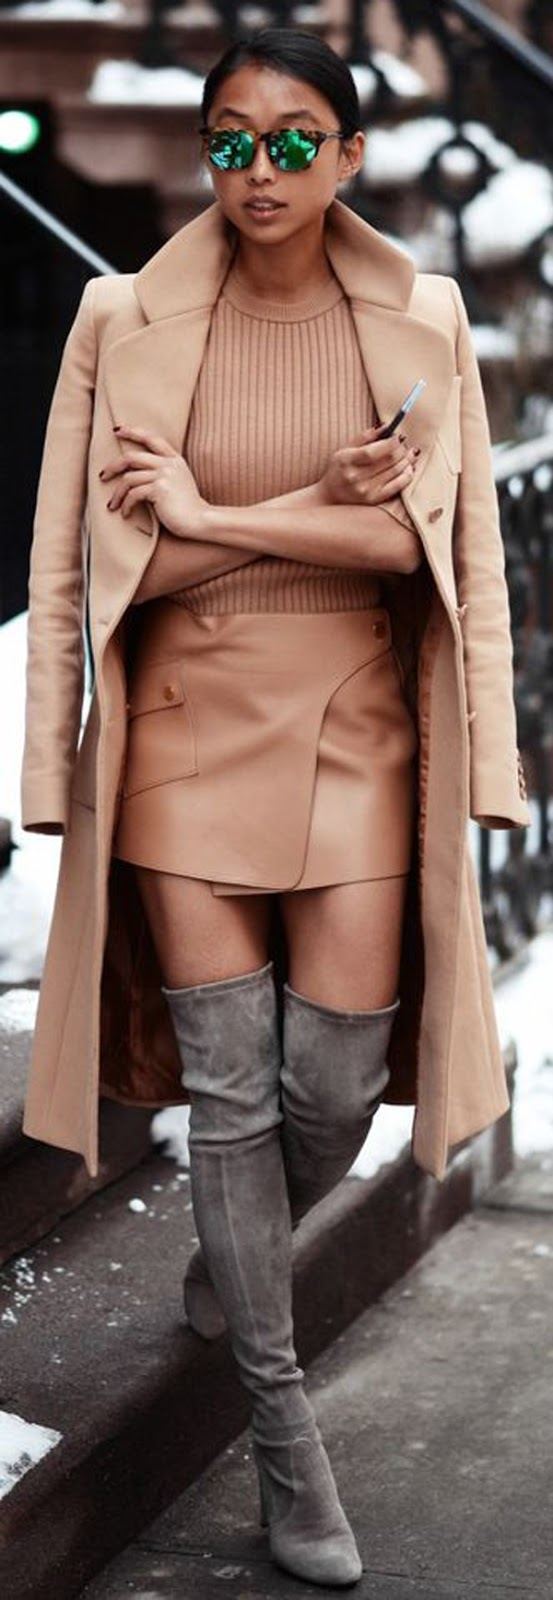 knee-high boots elegant style